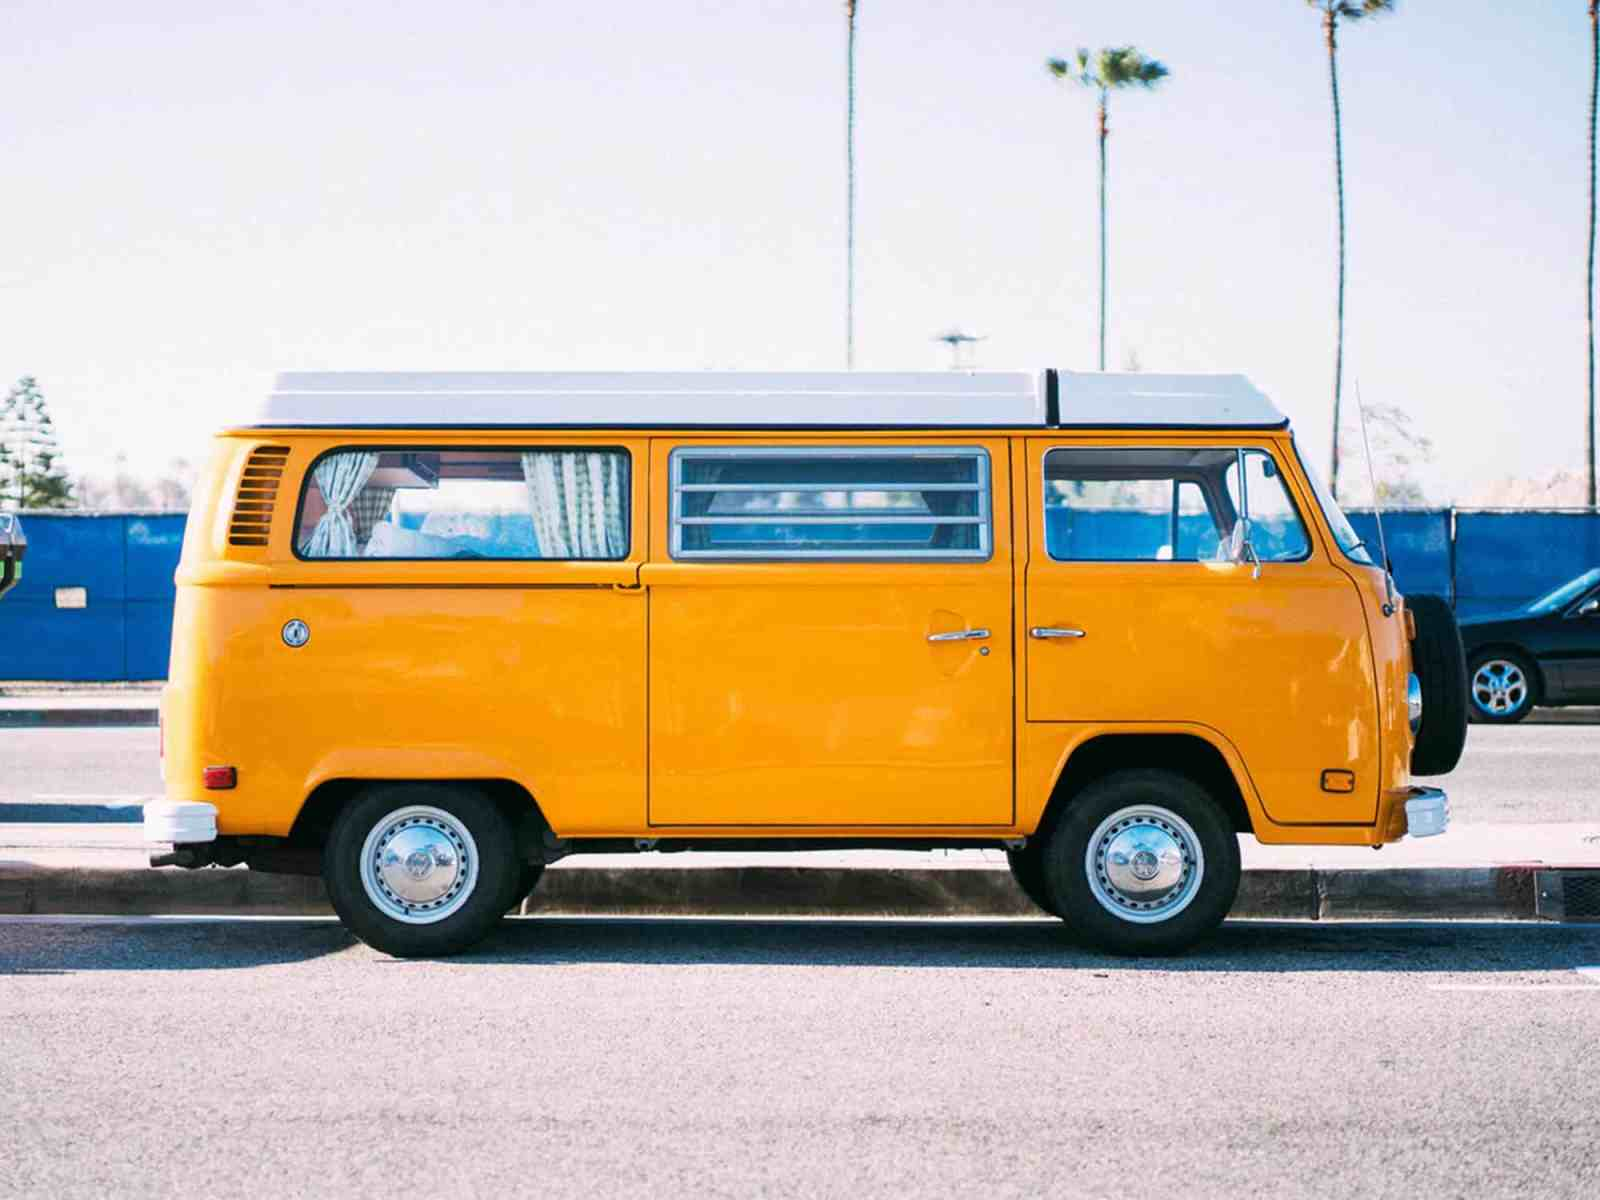 Life on the open road is a cool one. Interested in living in a van? Read on for advice from 5 people who actually live in a van!